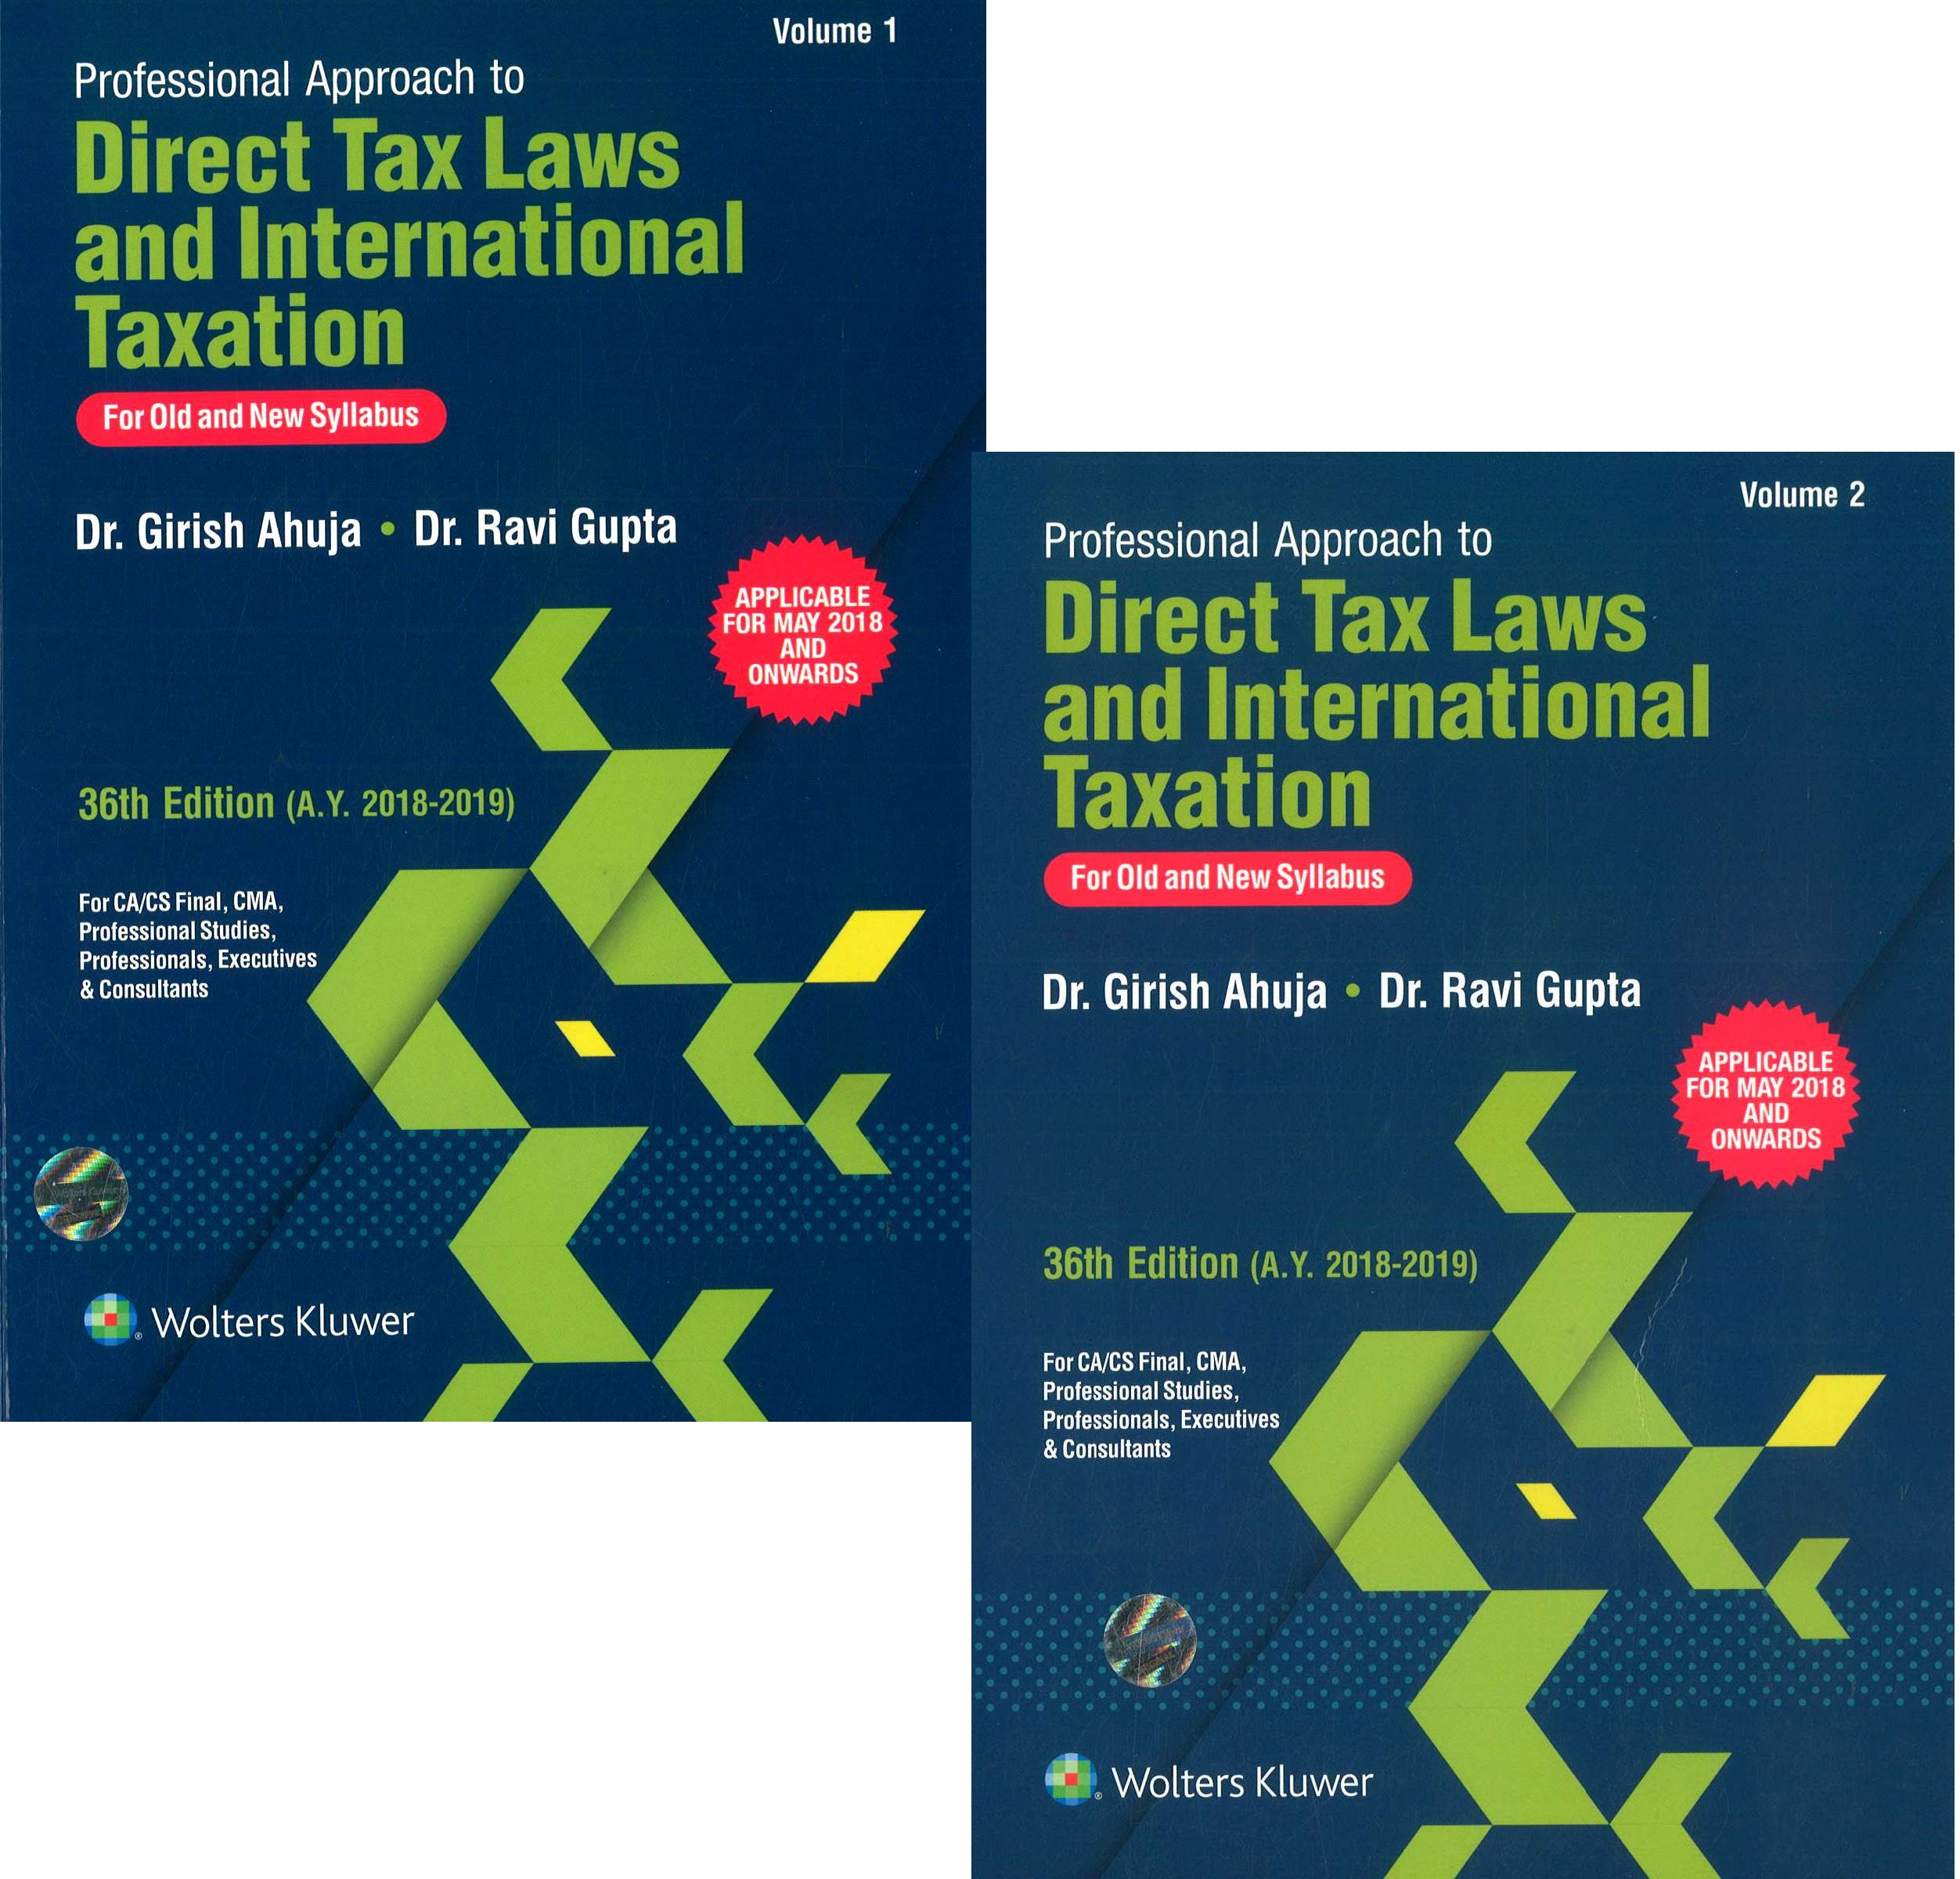 CCH Professional Approach to Direct Taxes Law & Practice for Old and New Syllabus for CA/CS/CMA Final By Dr Girish Ahuja Dr Ravi Gupta Applicable for May 2020 Exam